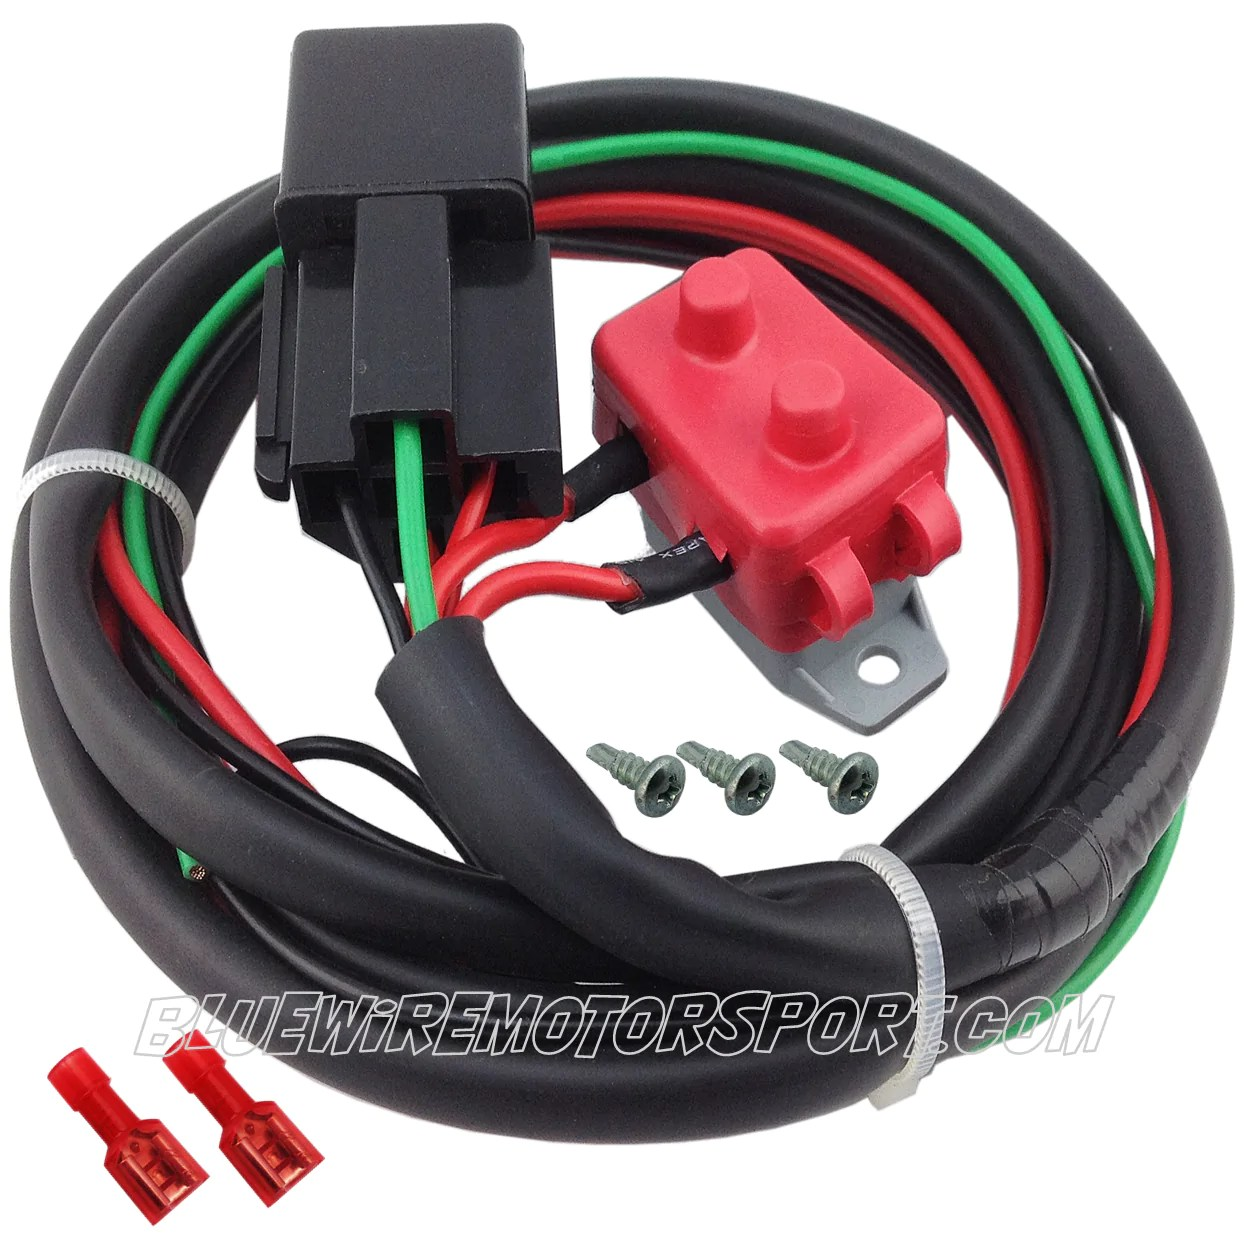 vz cooling fan wiring diagram atv winch relay holden commodore vk 19841986